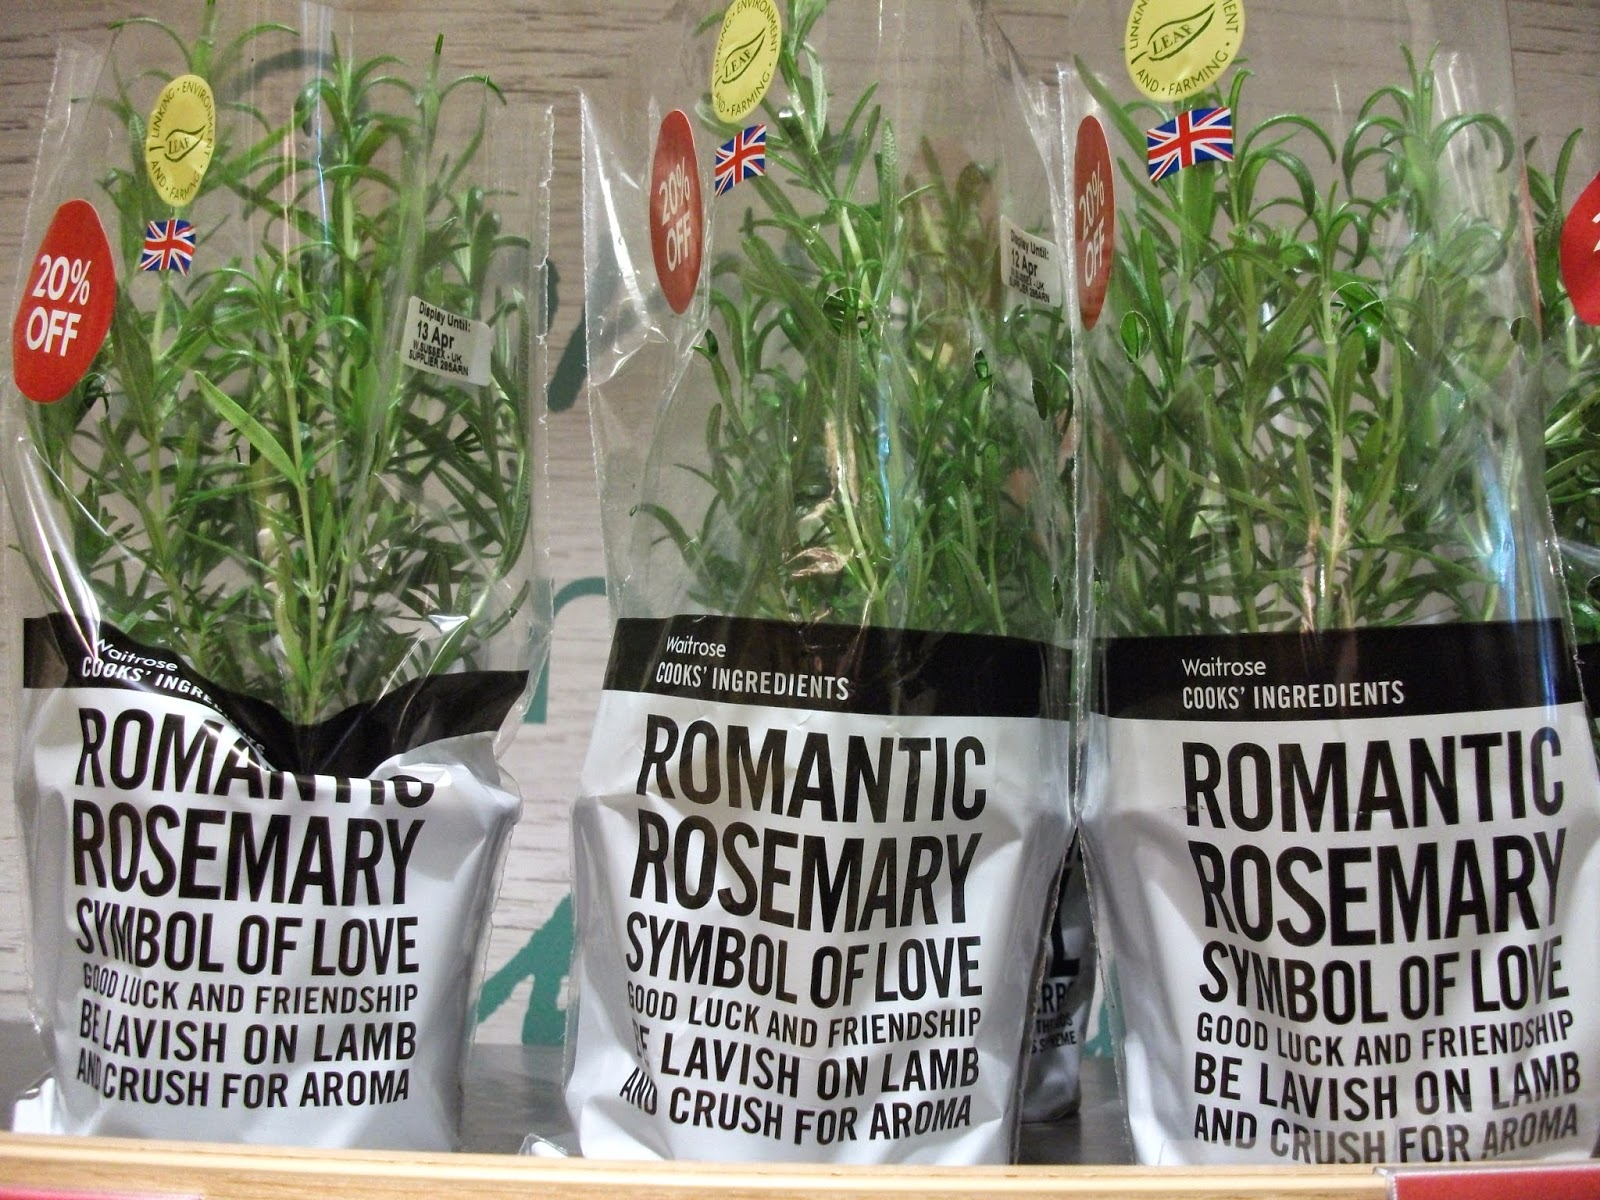 Rosemary for remembrance seeing symbols romantic rosemary symbol of love good luck and friendship be lavish on lamb and crush for aroma waitroses packaging combines symbolic lore with izmirmasajfo